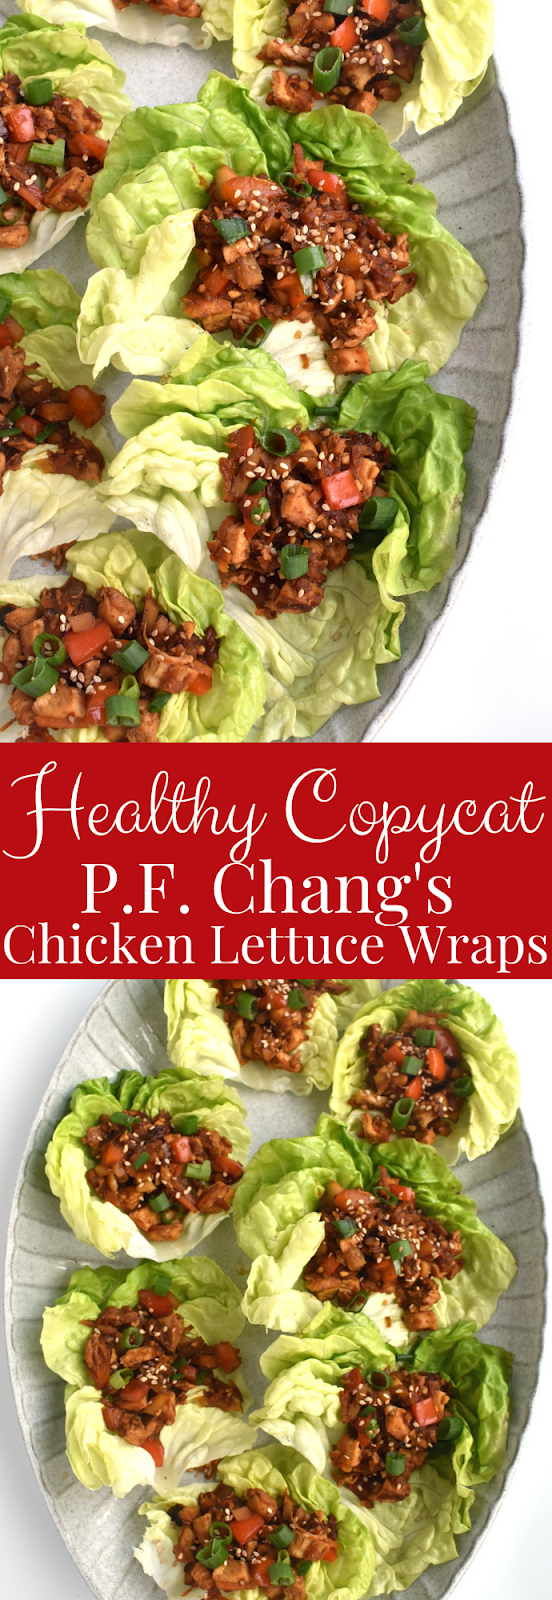 Healthy P.F. Chang's Chicken Lettuce Wraps